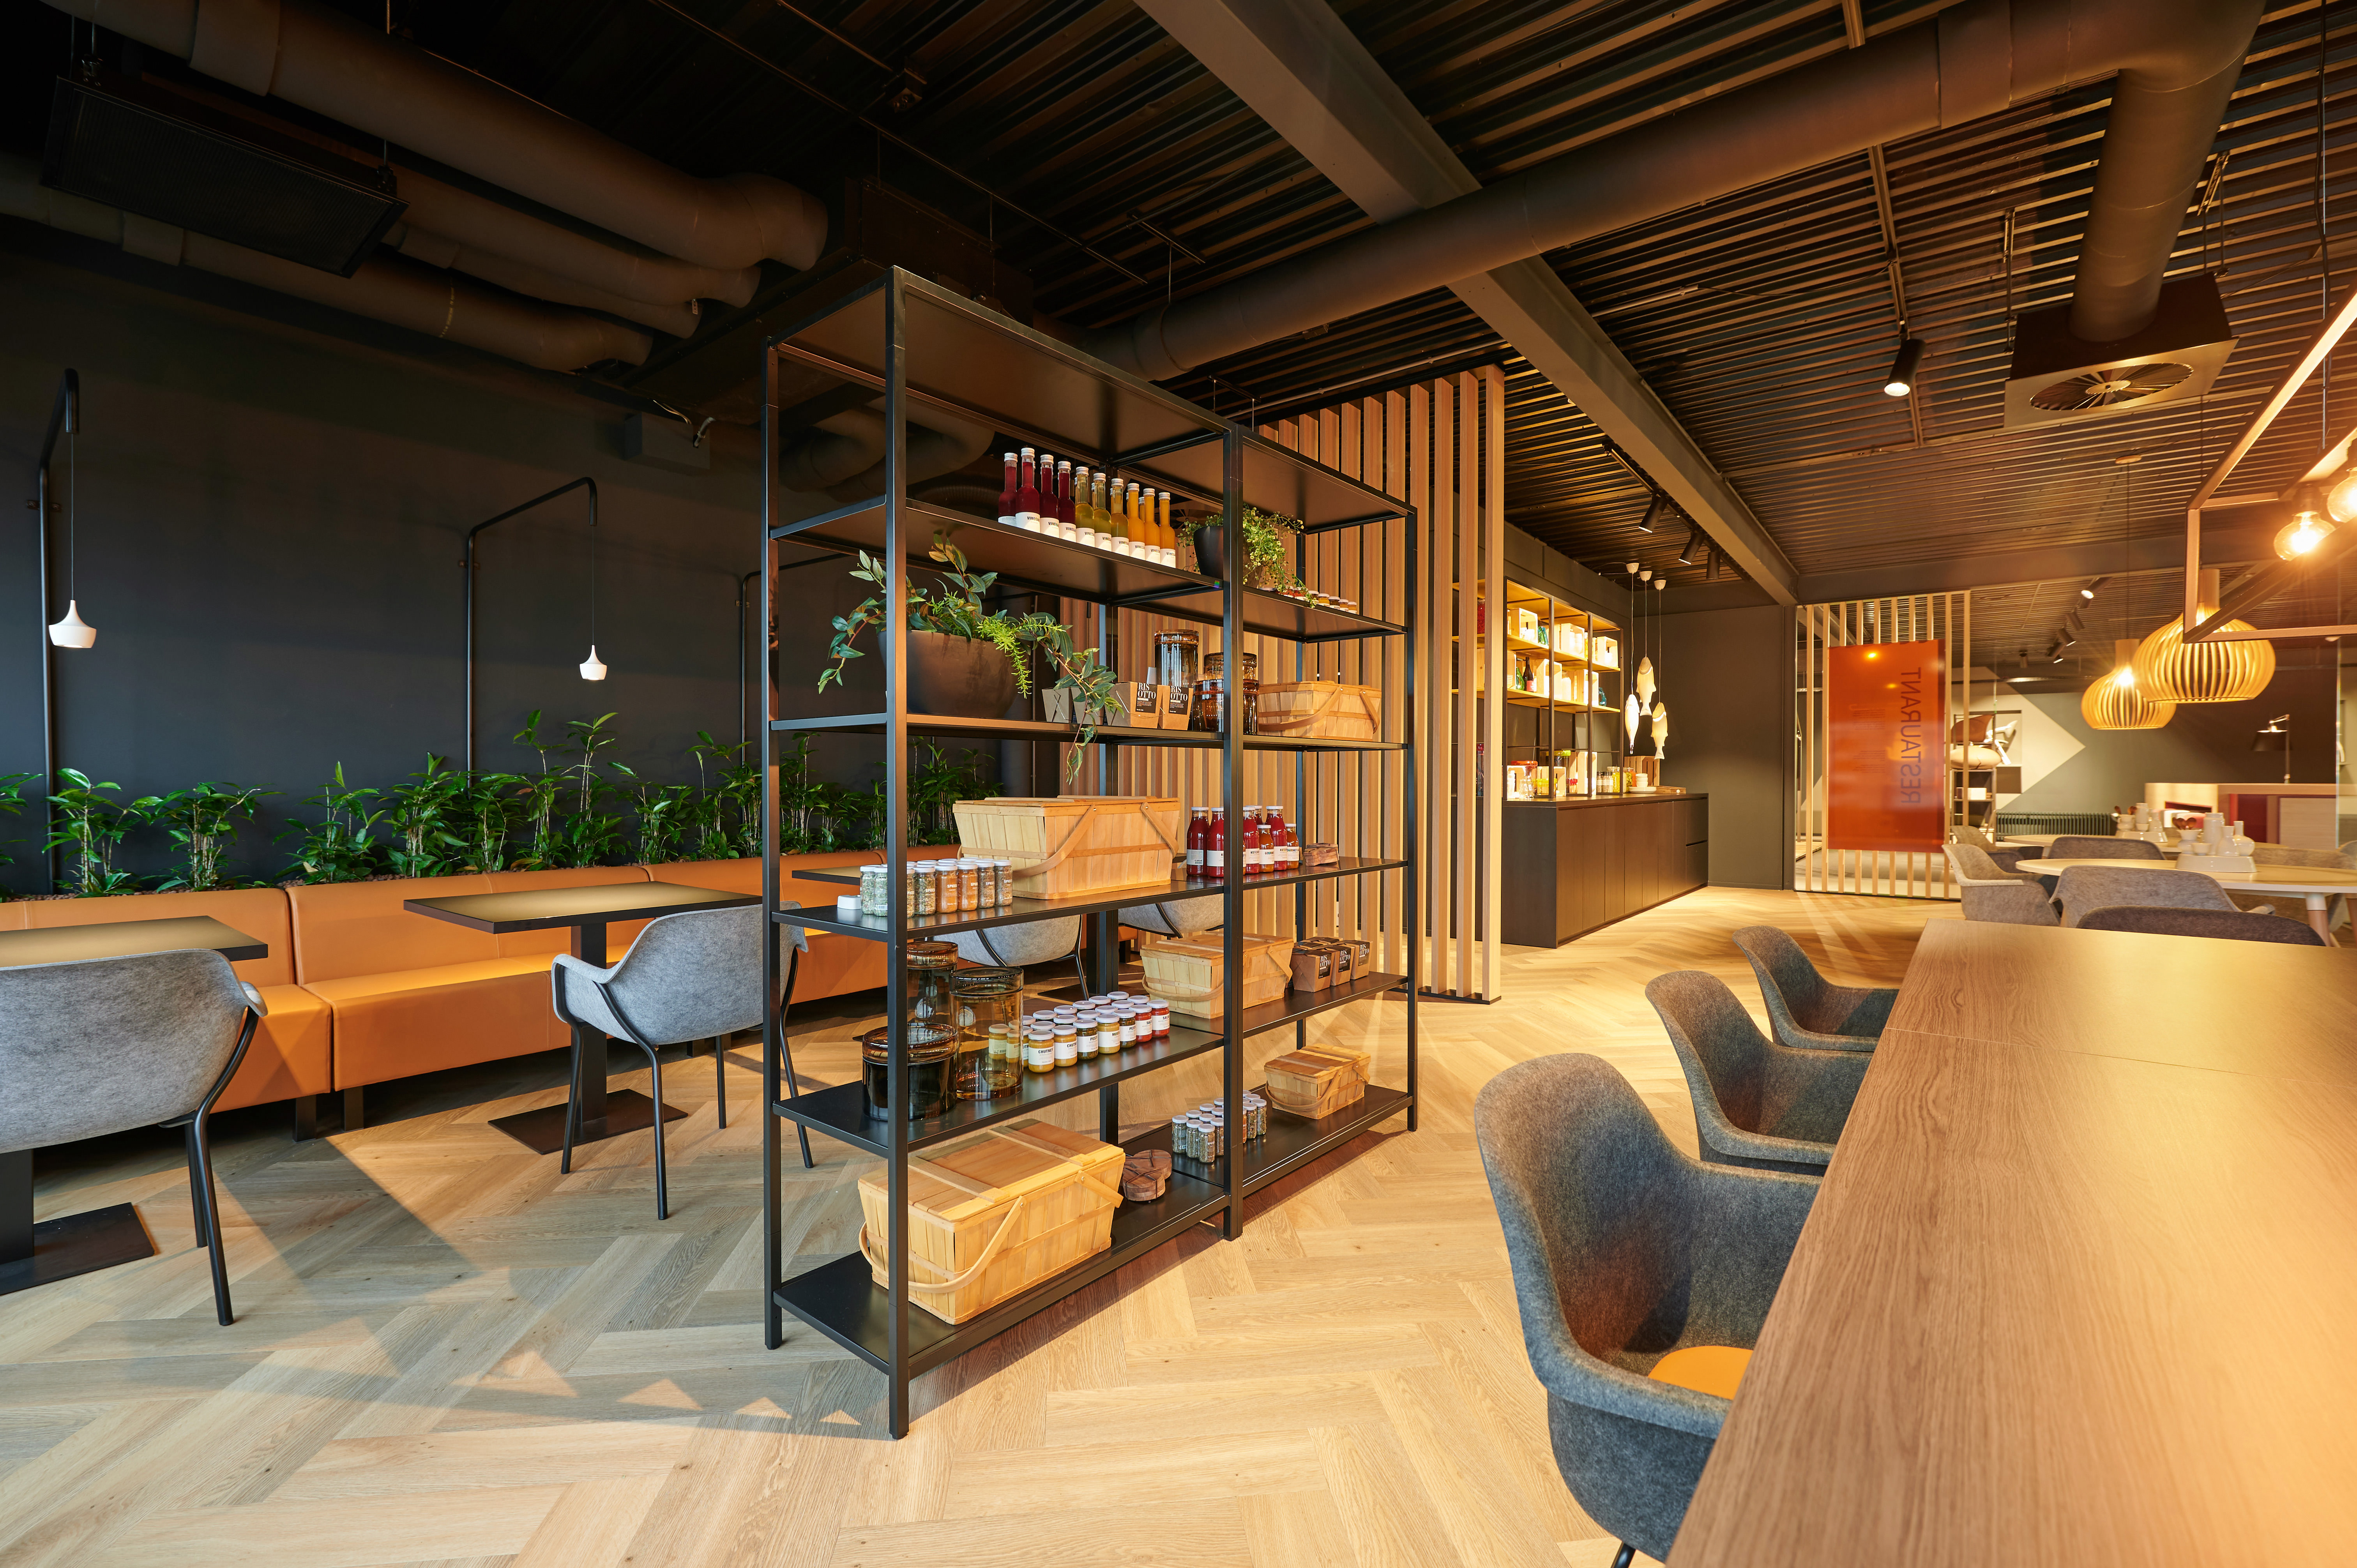 Afstyling Interieur in Hospitality